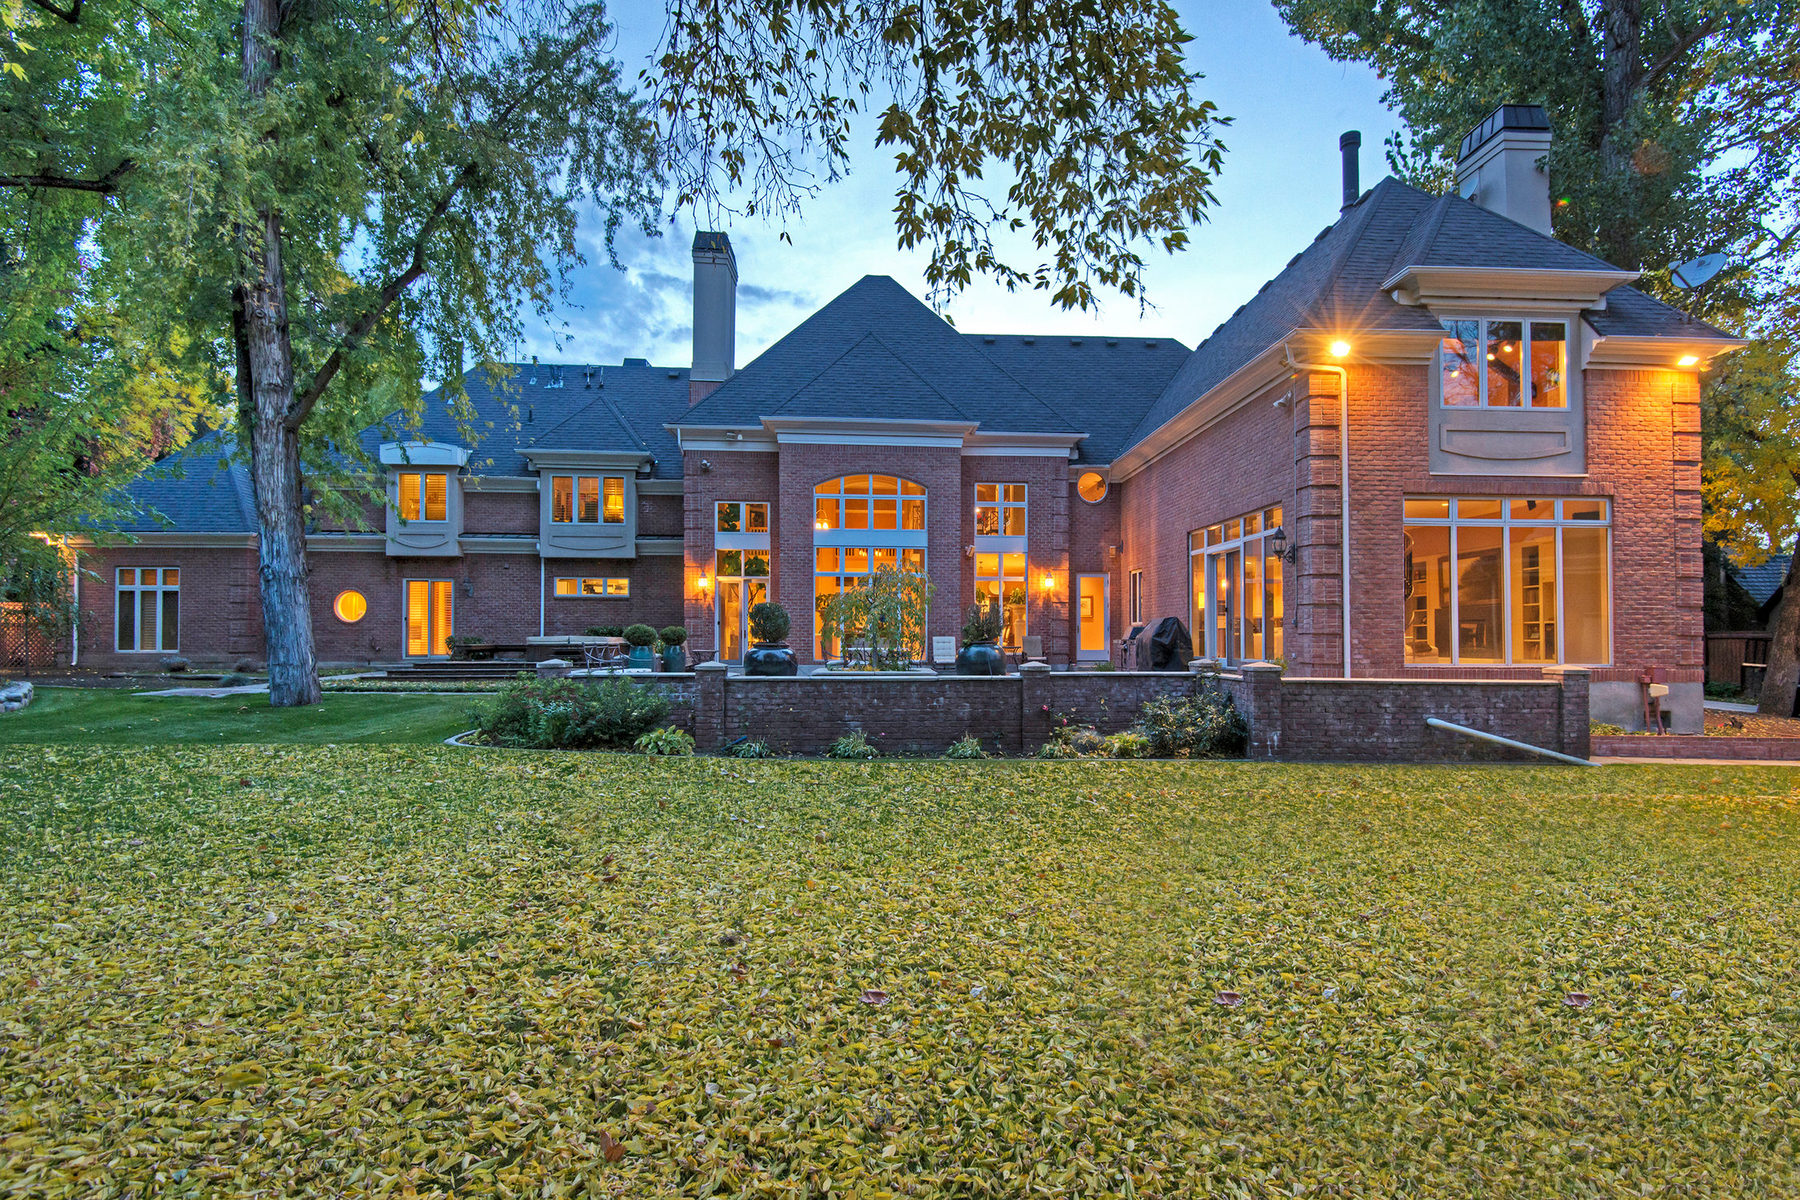 Maison unifamiliale pour l Vente à Stunning, Elegant Estate on Wooded Lot 5497 S Walker Estates Cir Salt Lake City, Utah 84117 États-Unis